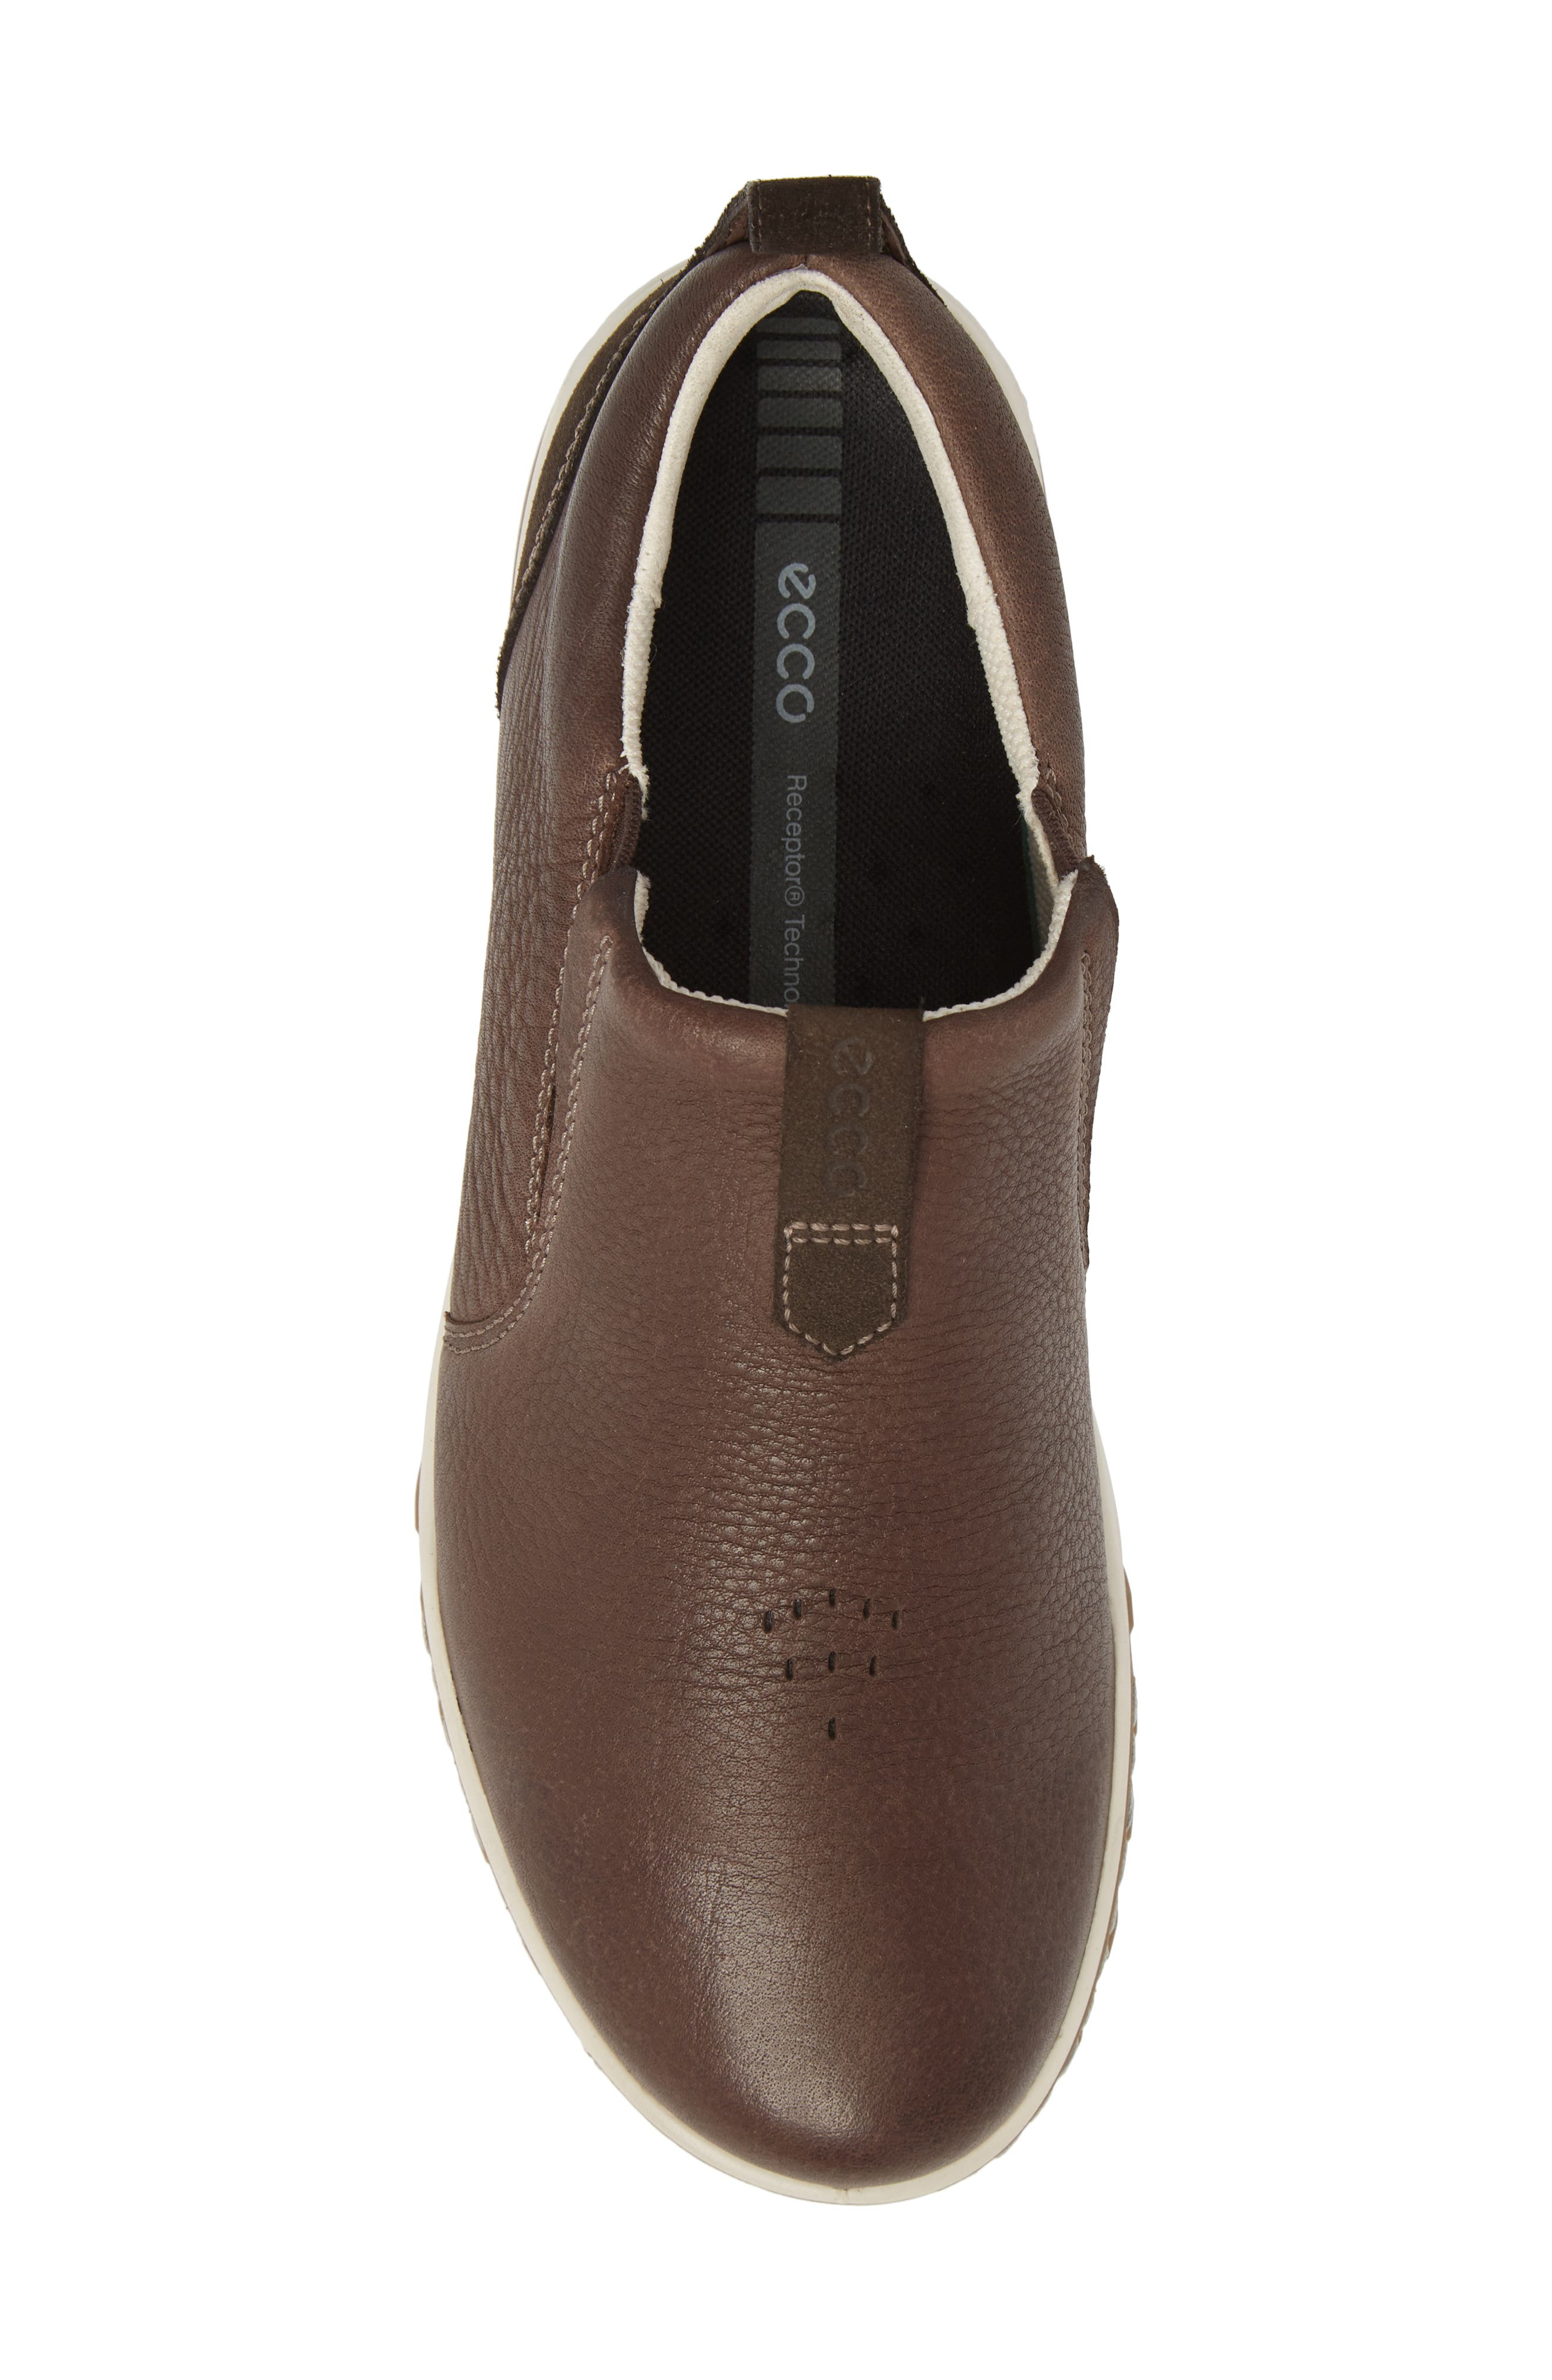 Urban Lifestyle Slip-On Sneaker,                             Alternate thumbnail 5, color,                             Coffee Leather